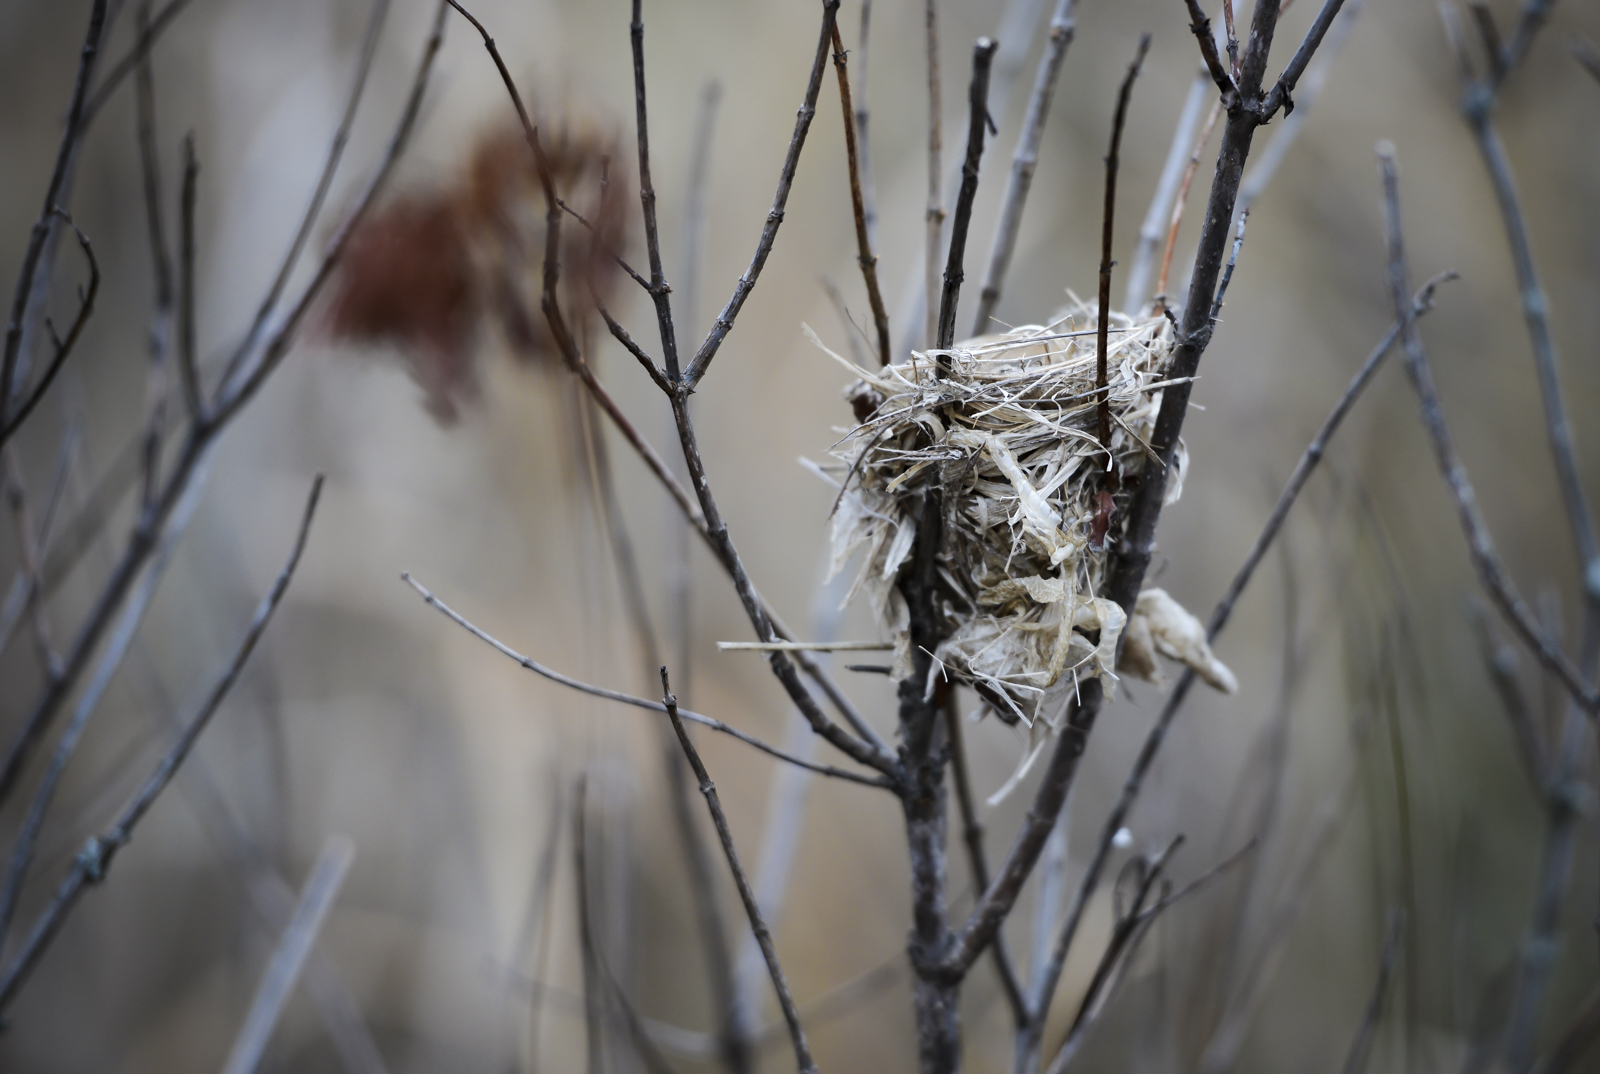 A nest hidden among the reeds in a marsh. When I captured this image, I noticed the items the bird used to construct its nest with.